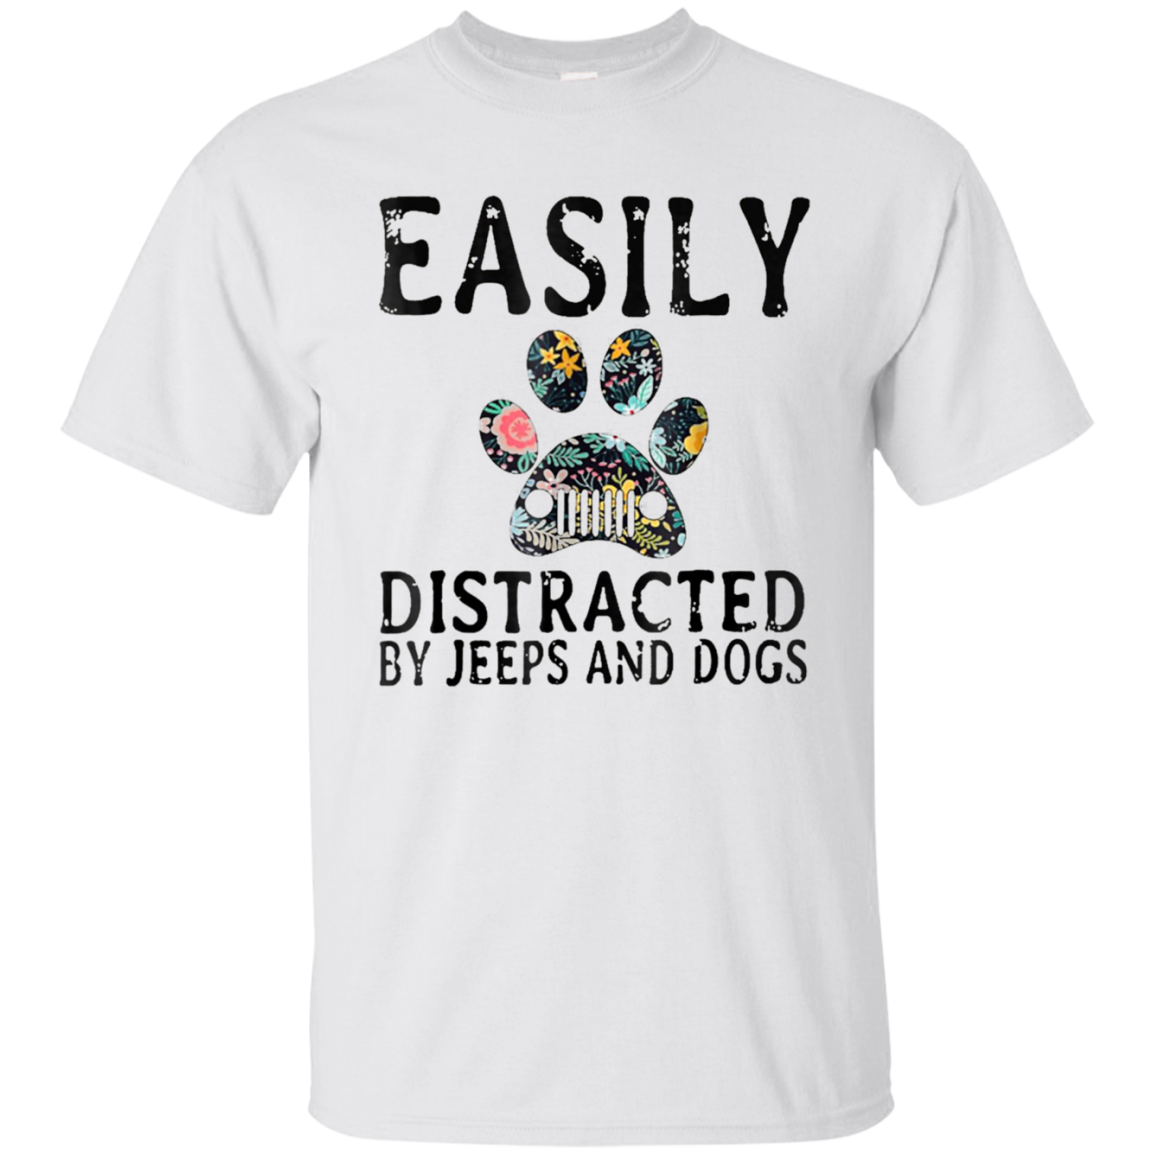 Easily distracted by jeeps and dogs T-Shirt